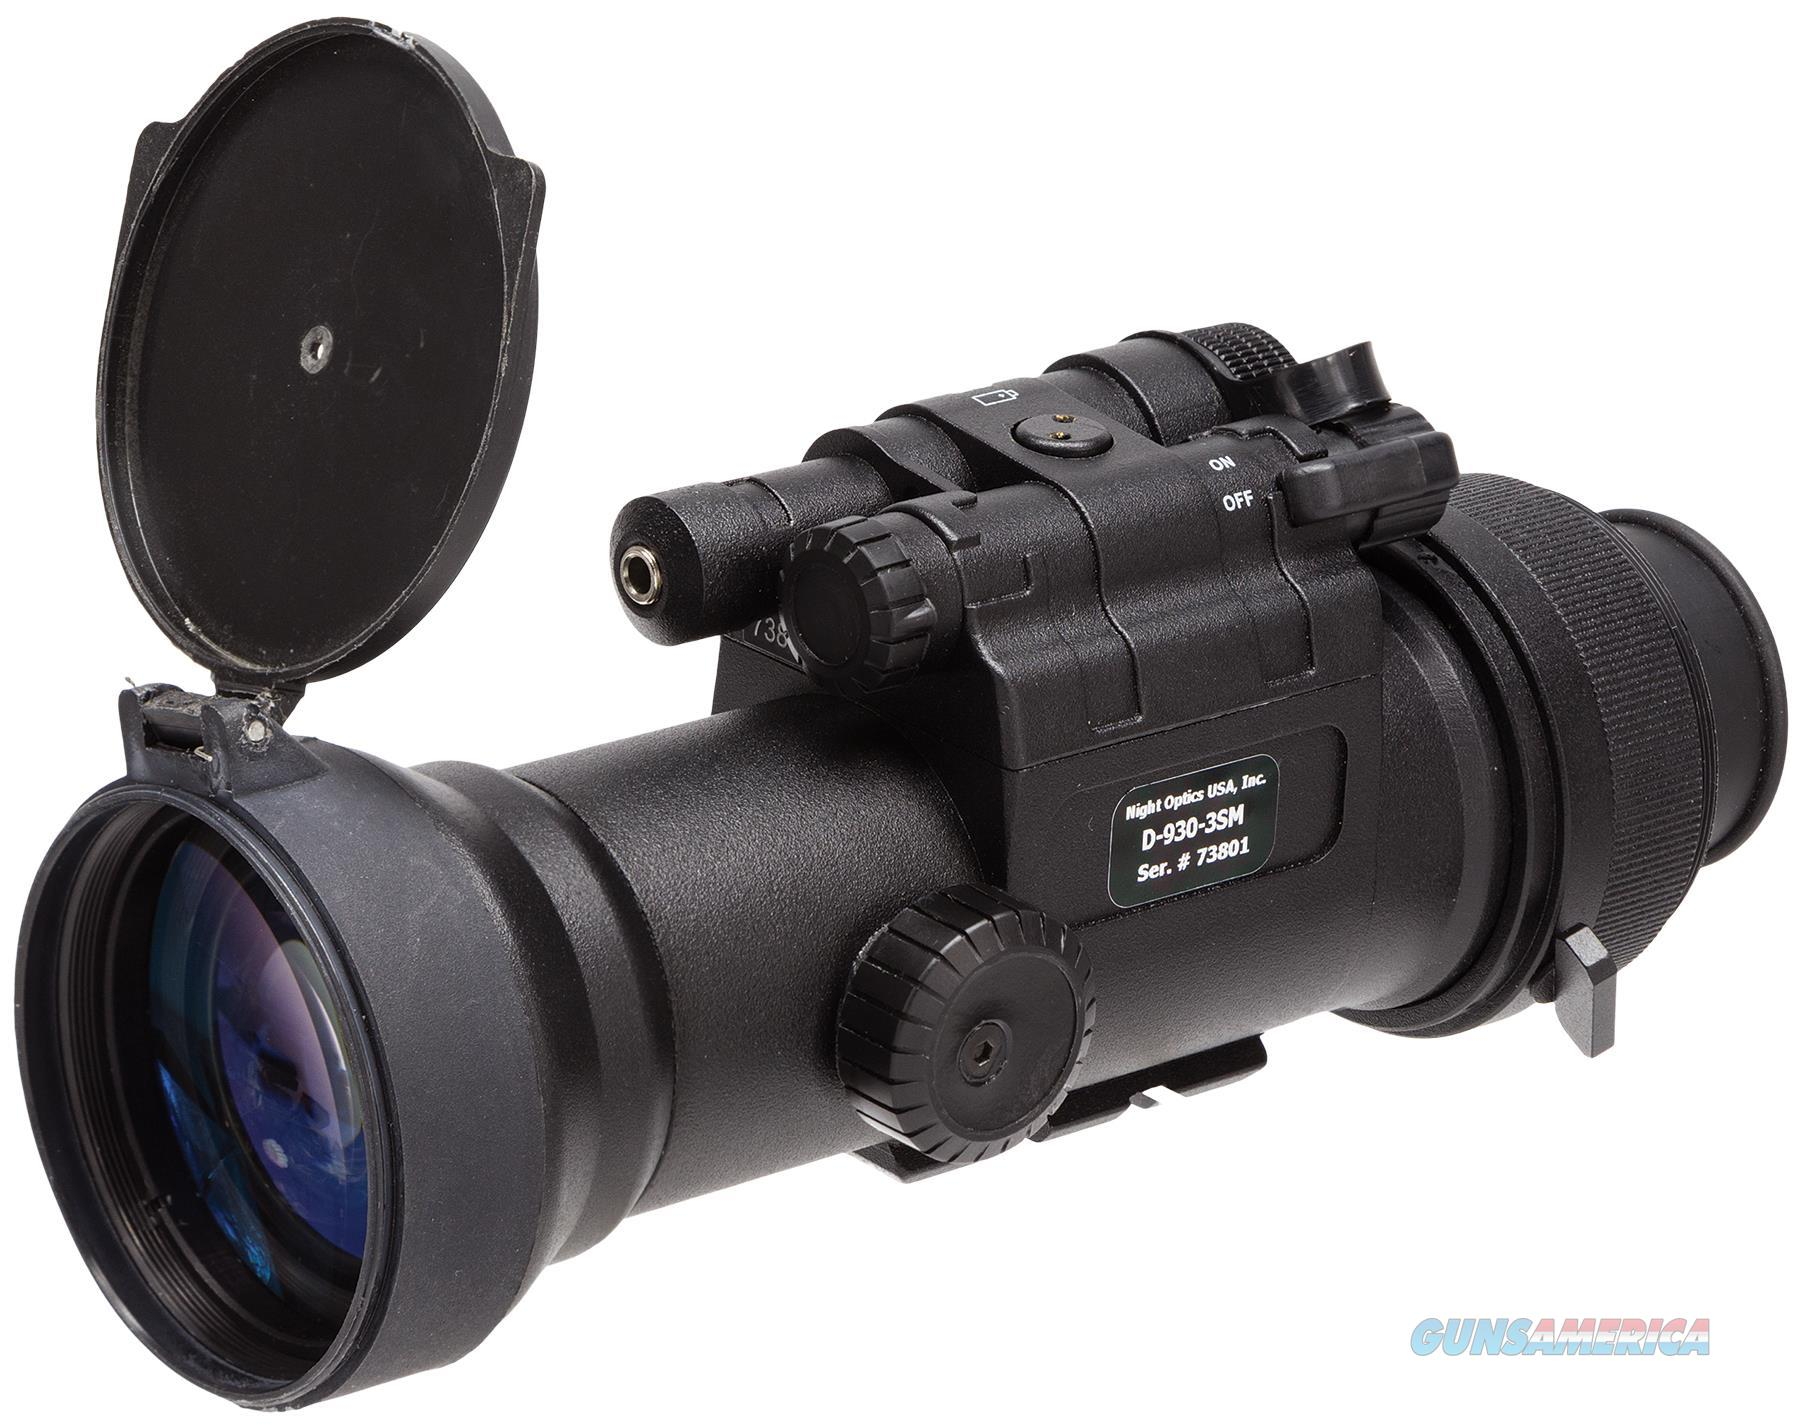 Night Optics Ns9303gm D-930 Night Vision Scope 3Rd Gen 1X  8.5 Degrees Fov NS9303GM  Non-Guns > Night Vision